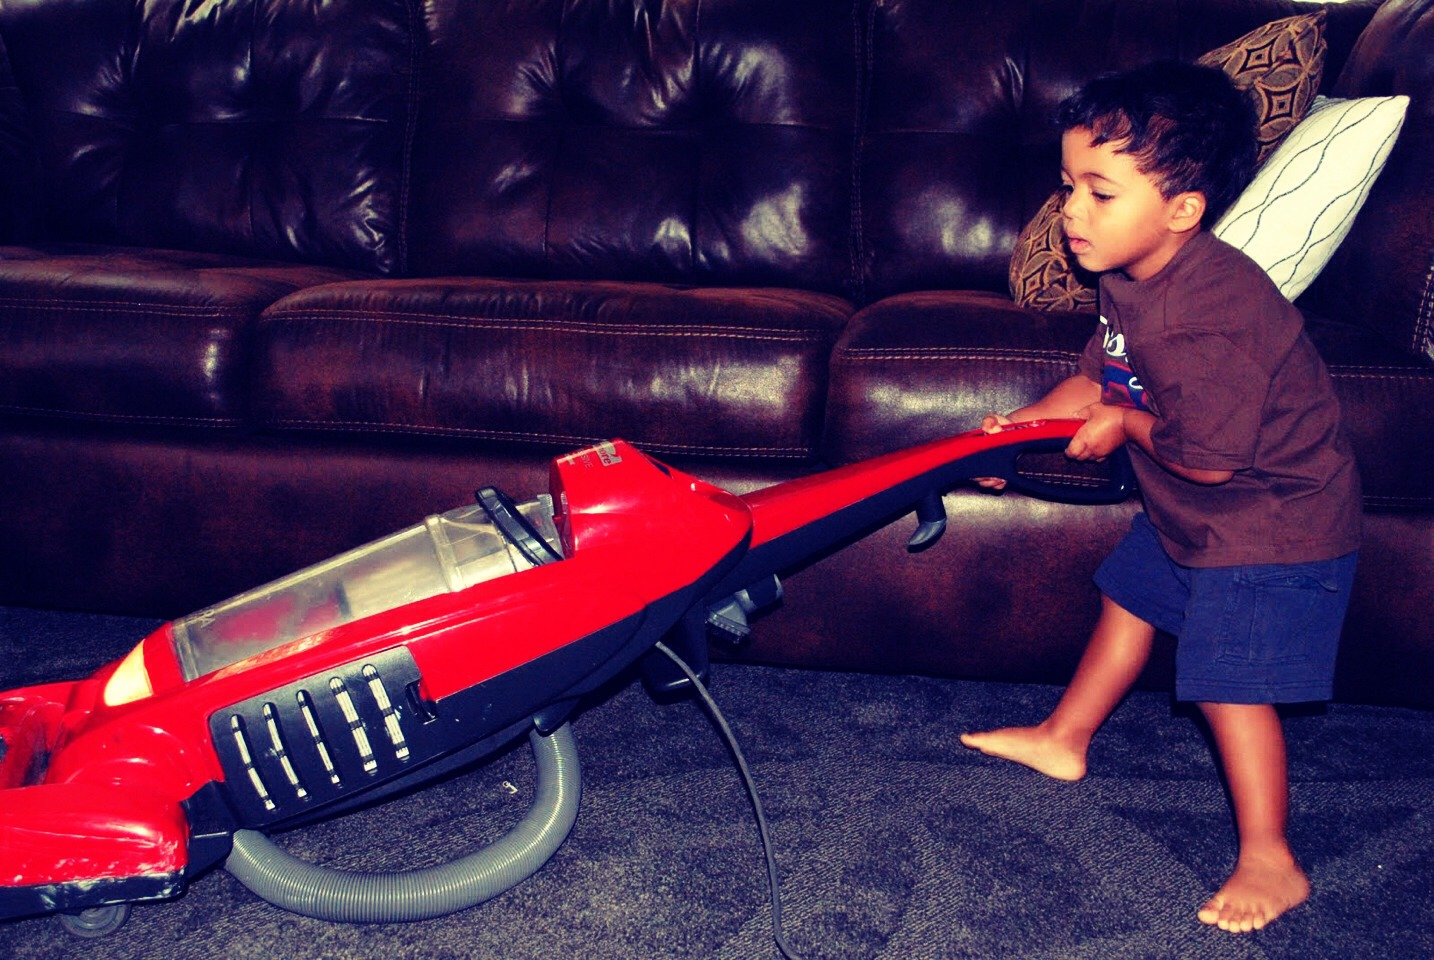 Is your kid scared of ghosts? Give them a vacuum and tell them it sucks up all the ghosts. Send them around the whole house! It's a cleaning hack too!